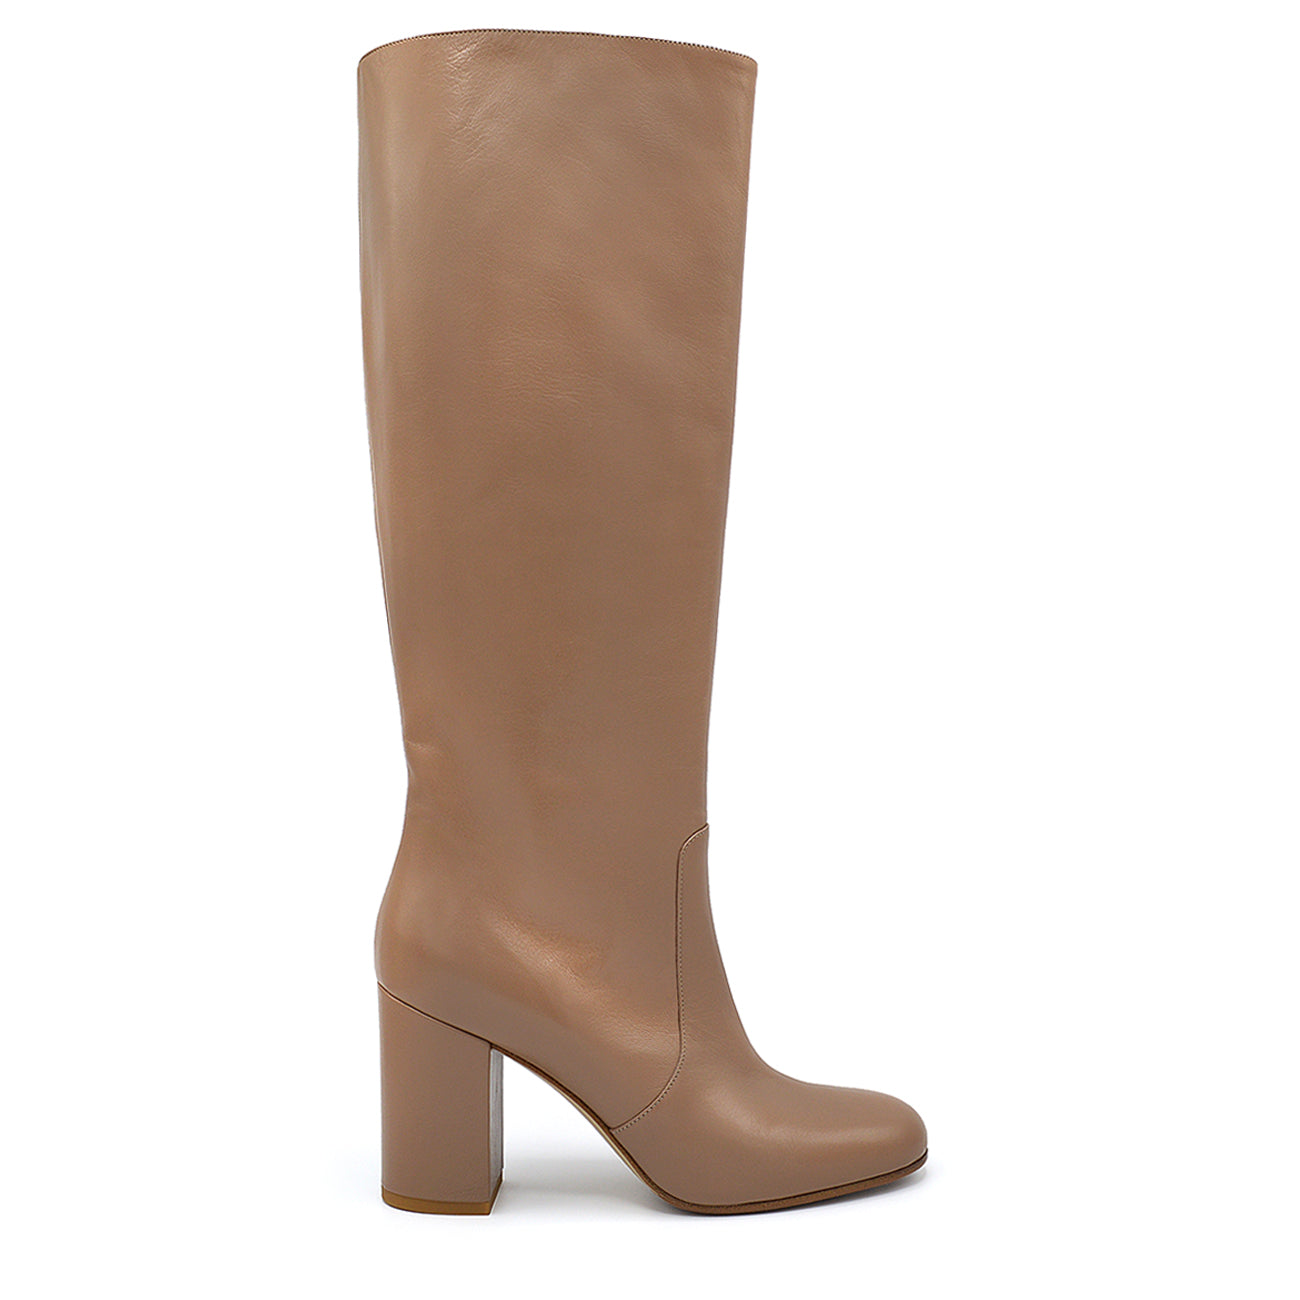 Nikyta. <br> Bardon beige nappa leather knee-high boots